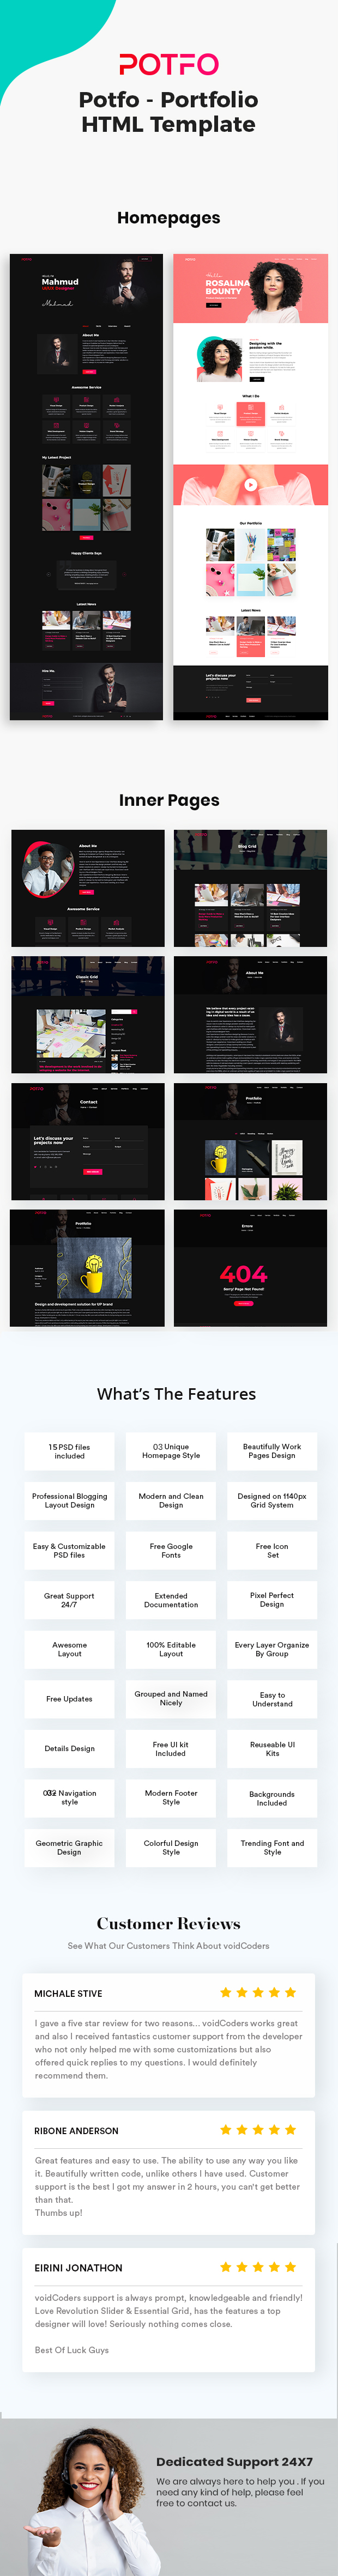 Potfo - Personal Portfolio HTML5 Template with RTL support - 1